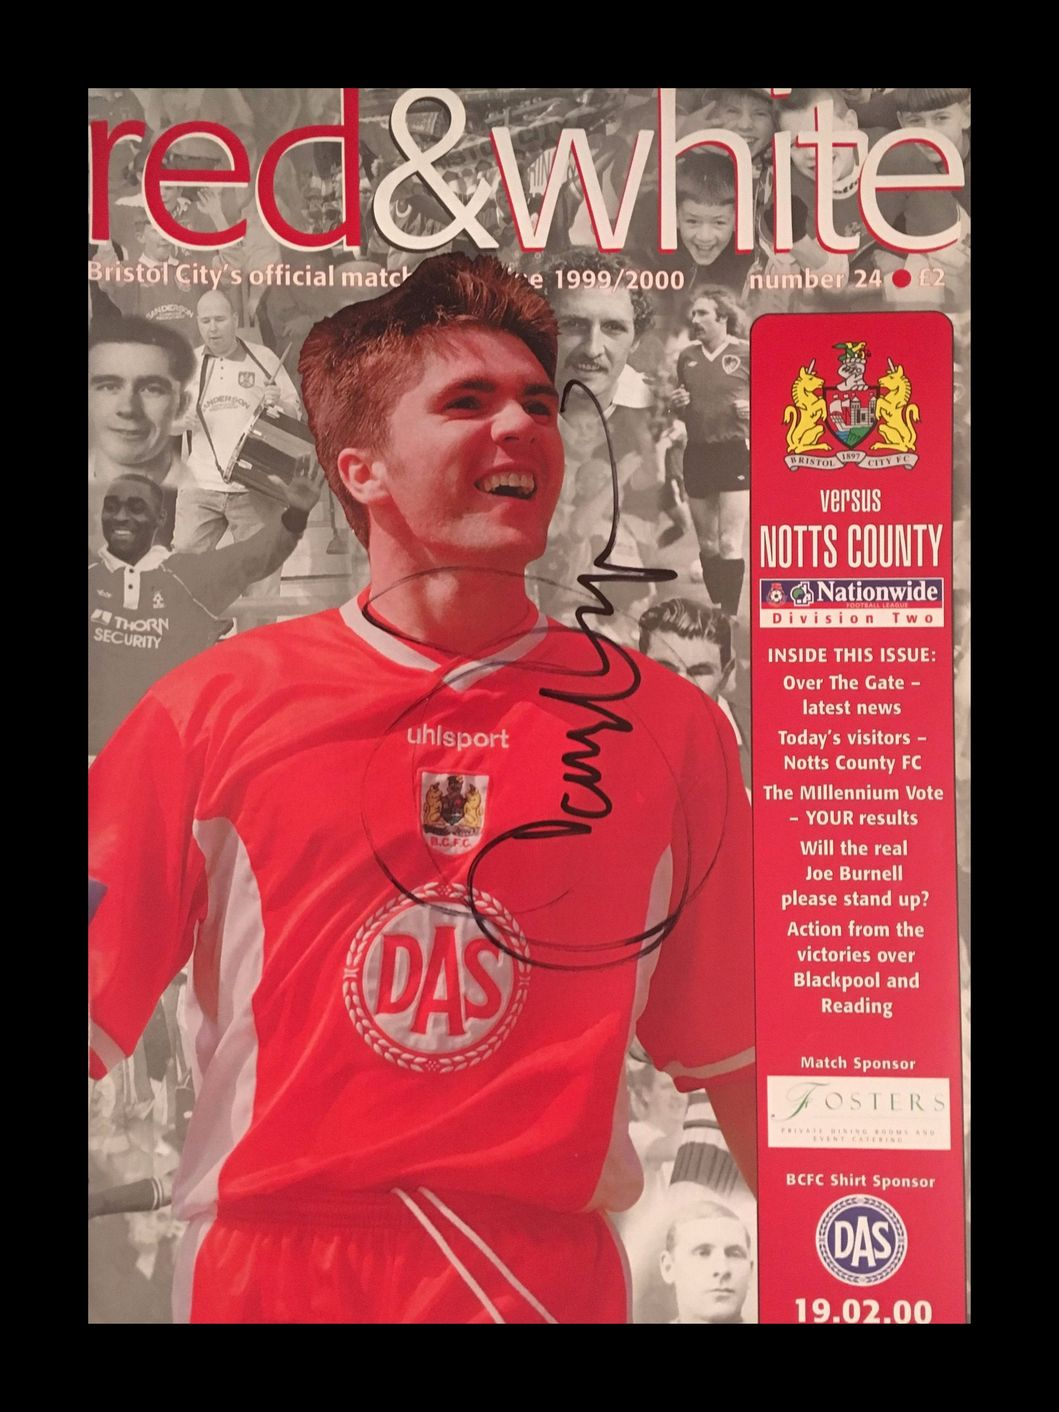 Bristol City v Notts County 19-02-2000 Programme